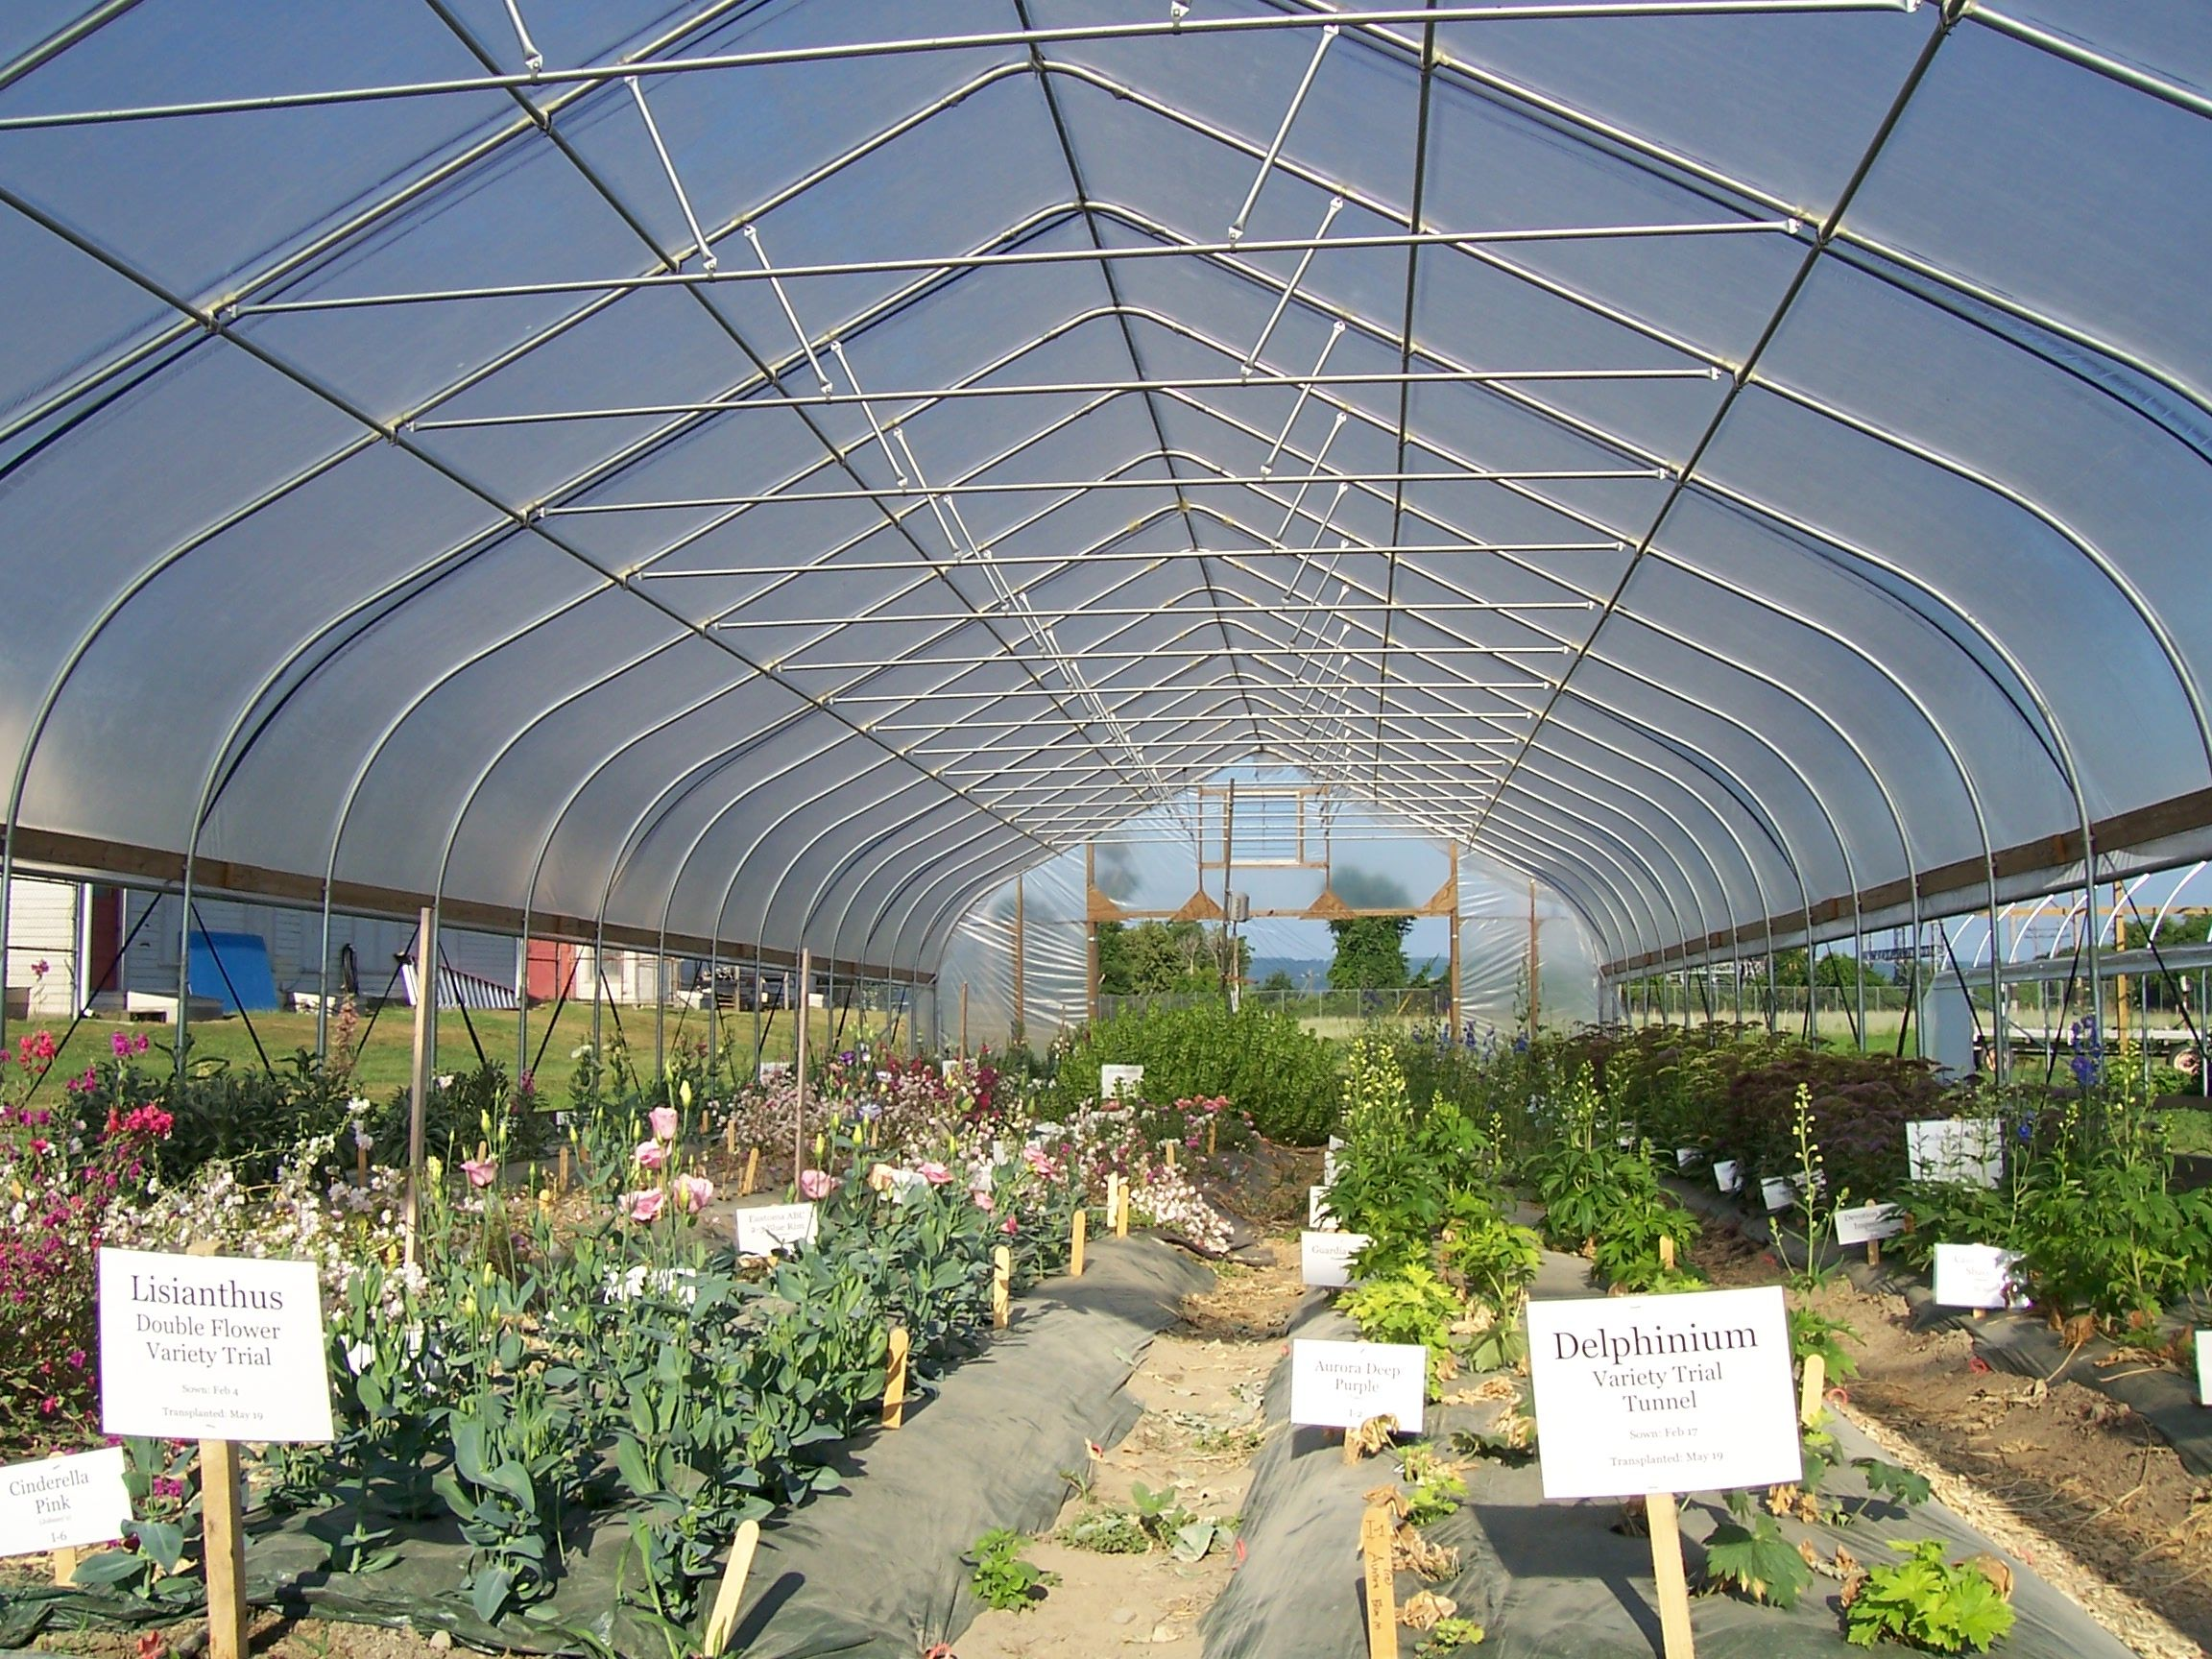 high tunnel growing at cornell in a rimol greenhouse - Rimol Greenhouse Of Photos